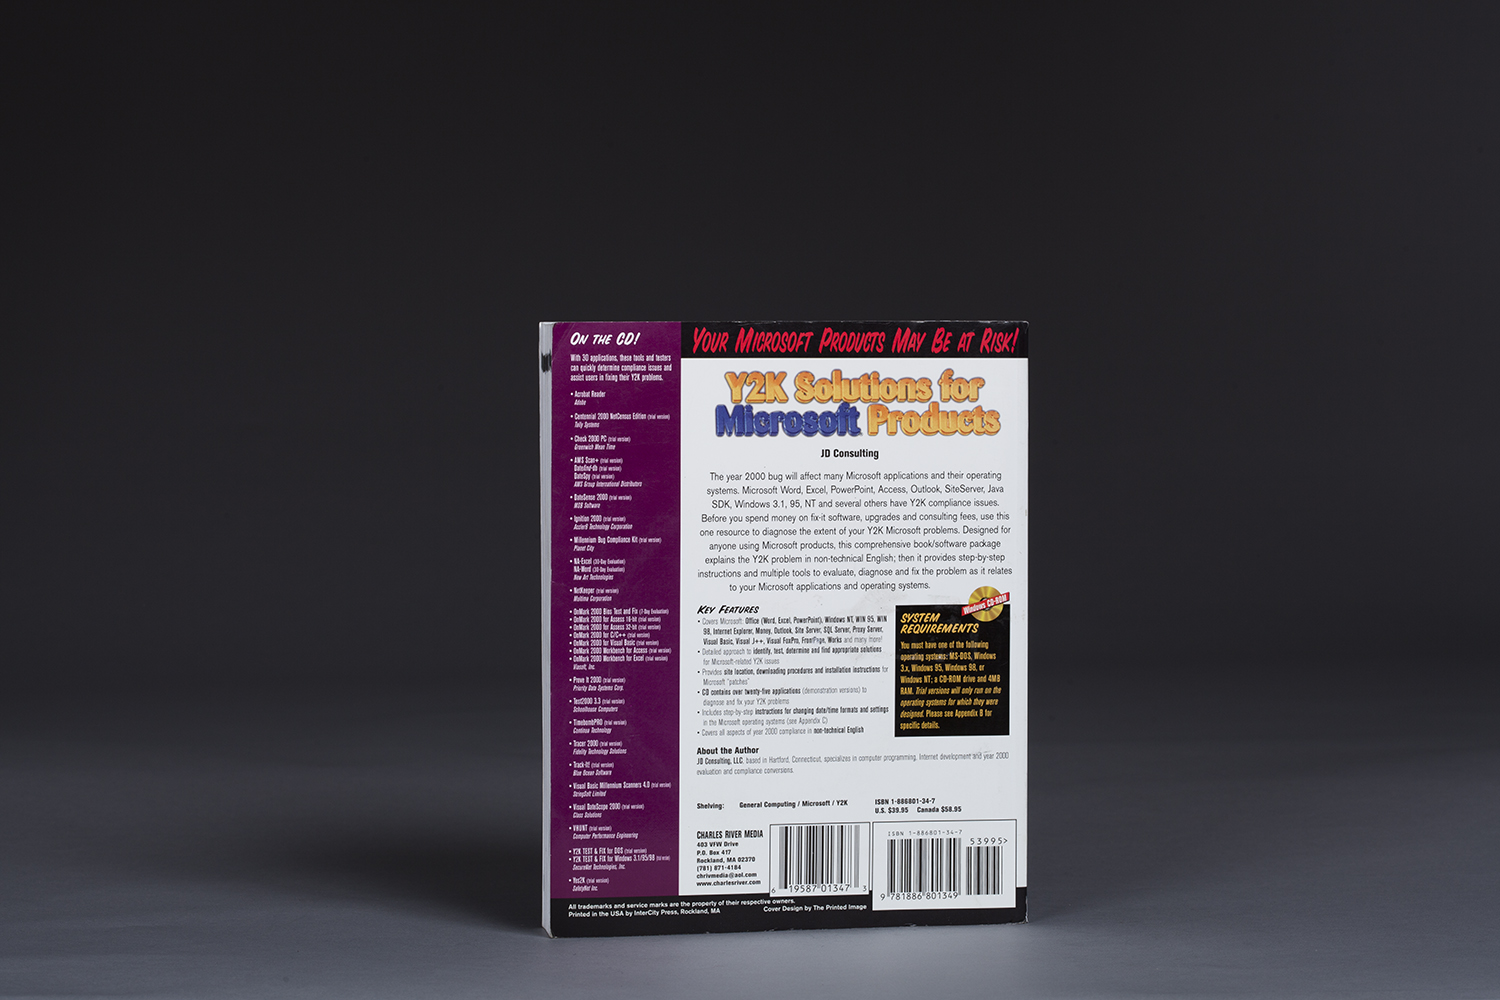 Y2K Solutions for Microsoft Products - 0074 Back.jpg